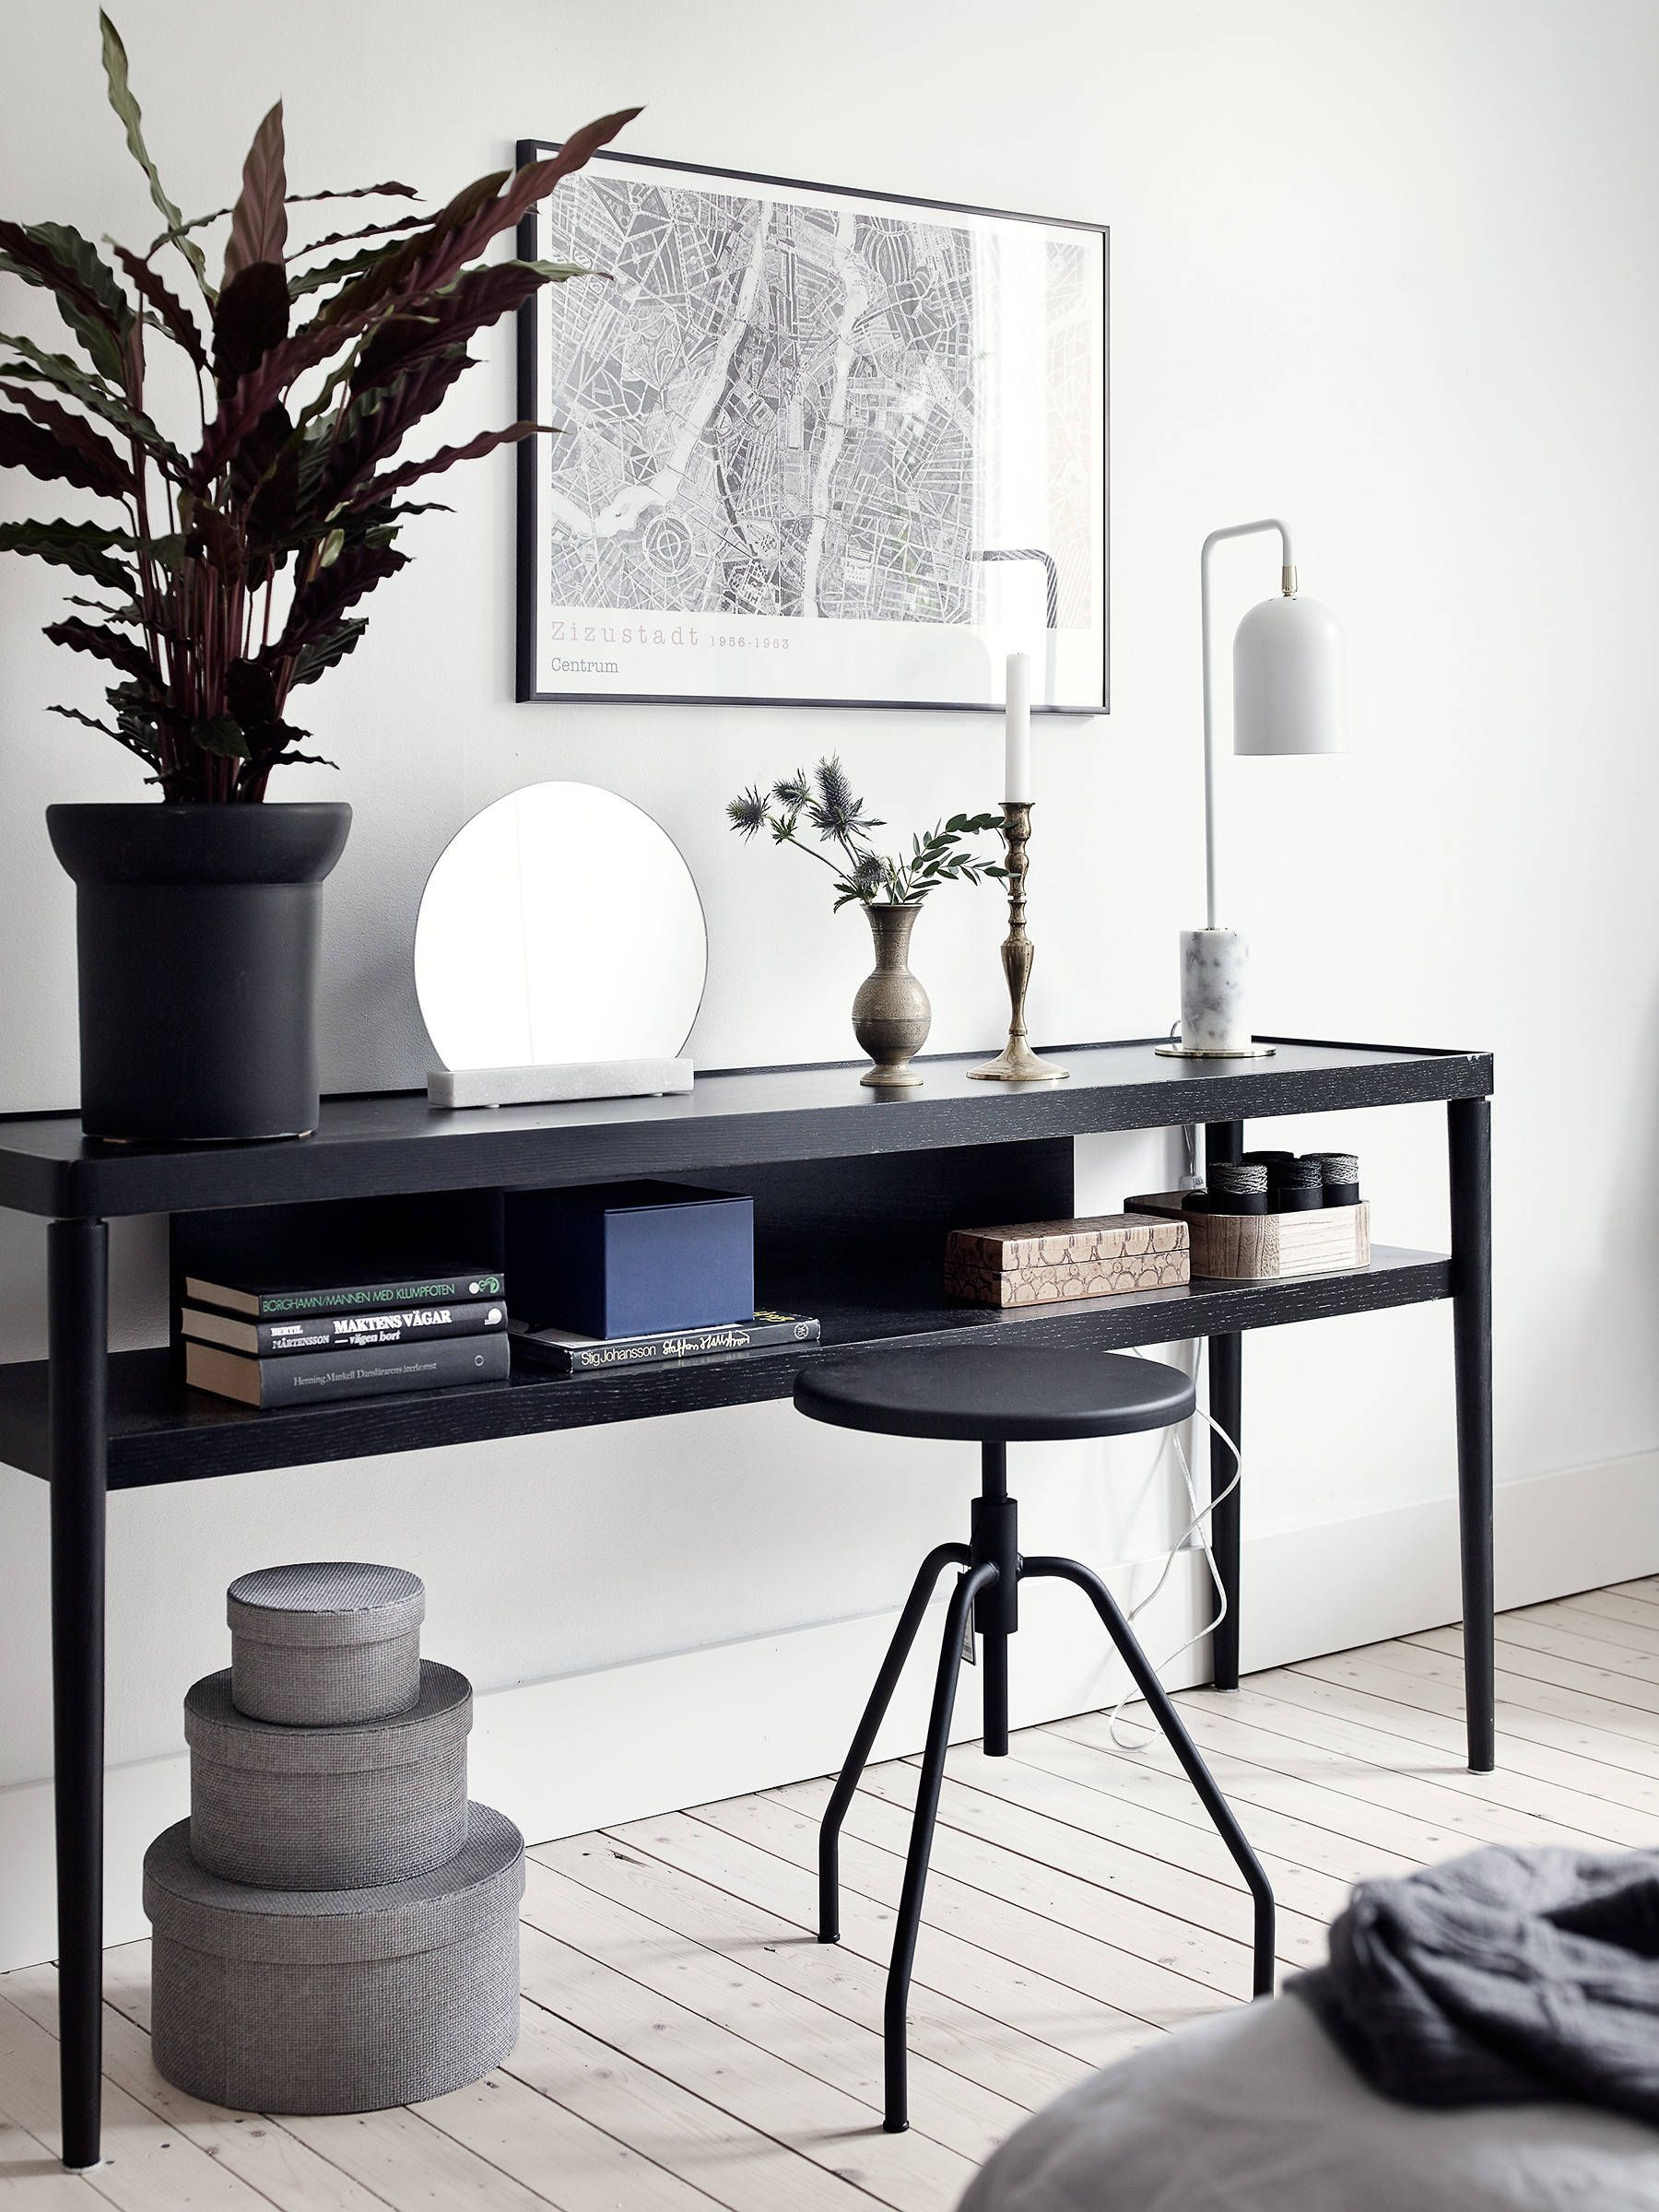 black decor in a white interior workspace black decor black rh pinterest com